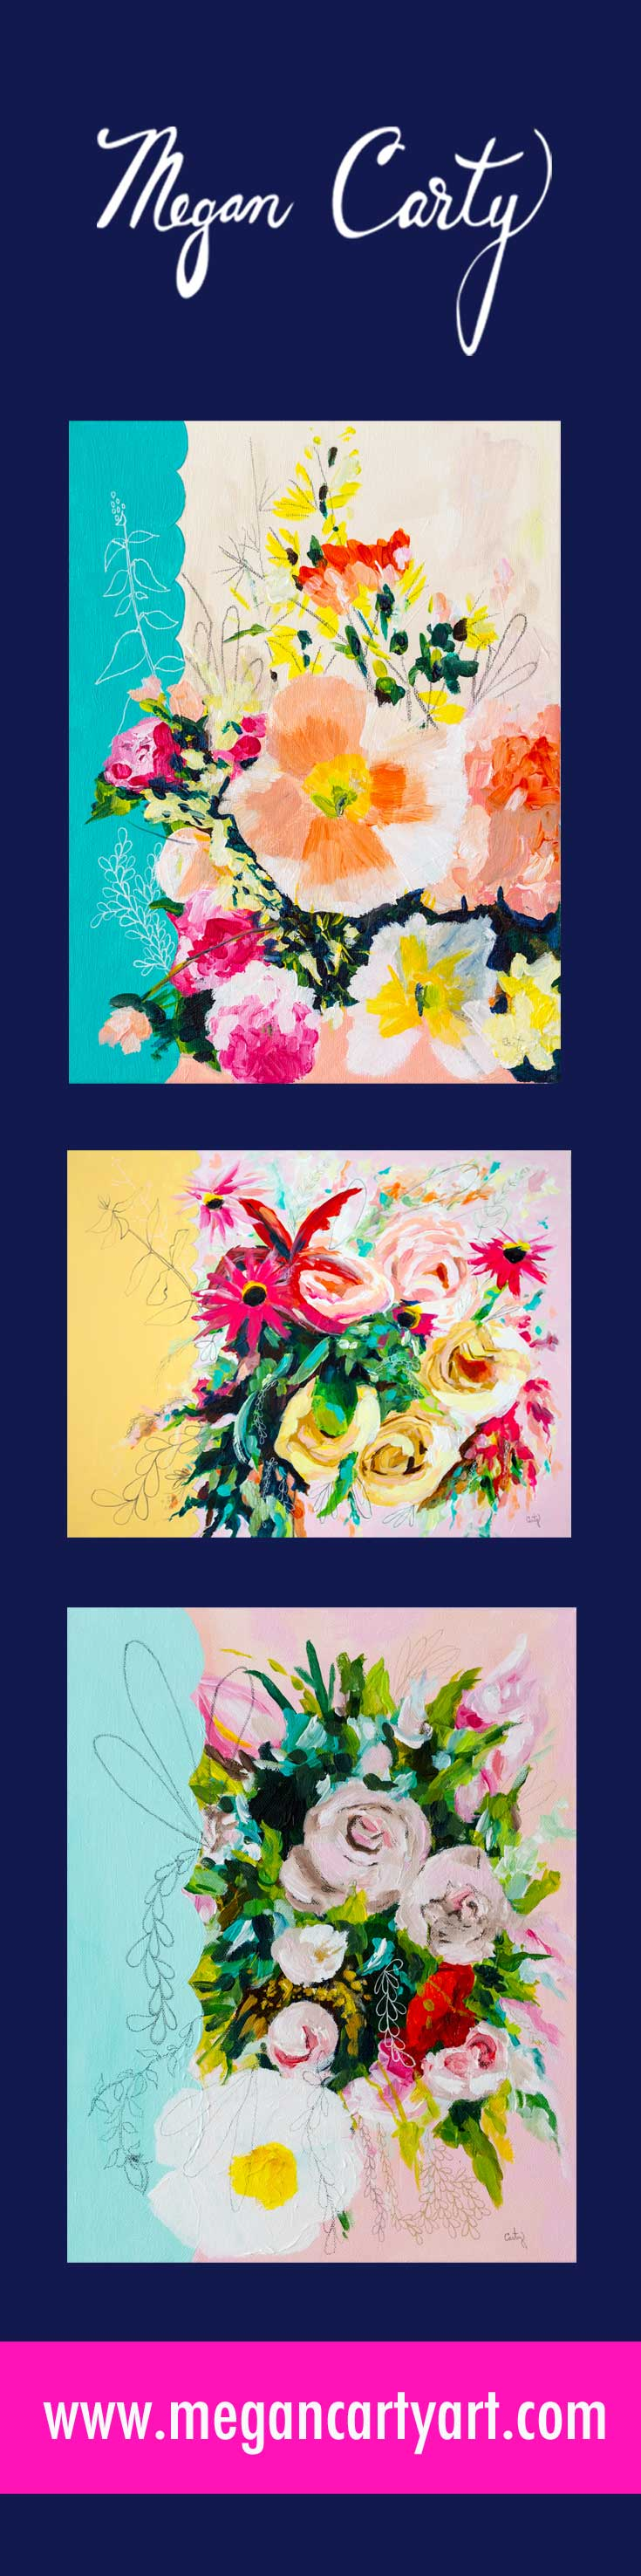 vintage-inspired abstract floral paintings by megan carty